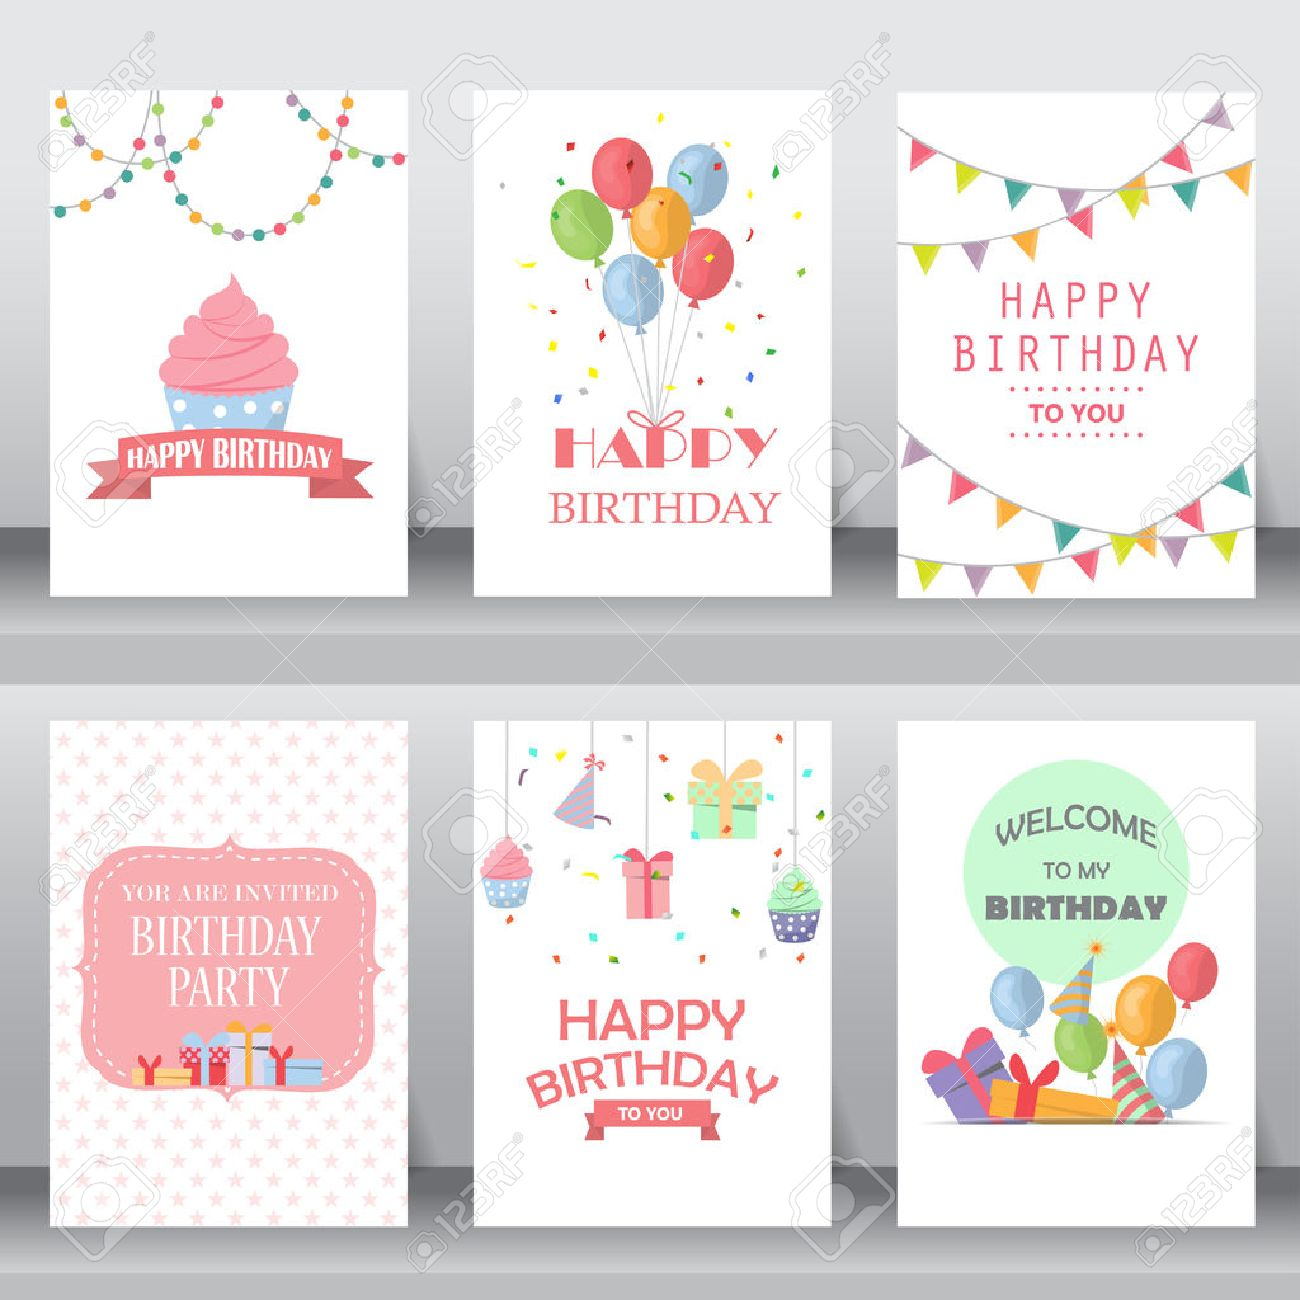 happy birthday, holiday, christmas greeting and invitation card. there are balloon, gift boxes, confetti, cup cake. layout template in A4 size. vector illustration - 53611189